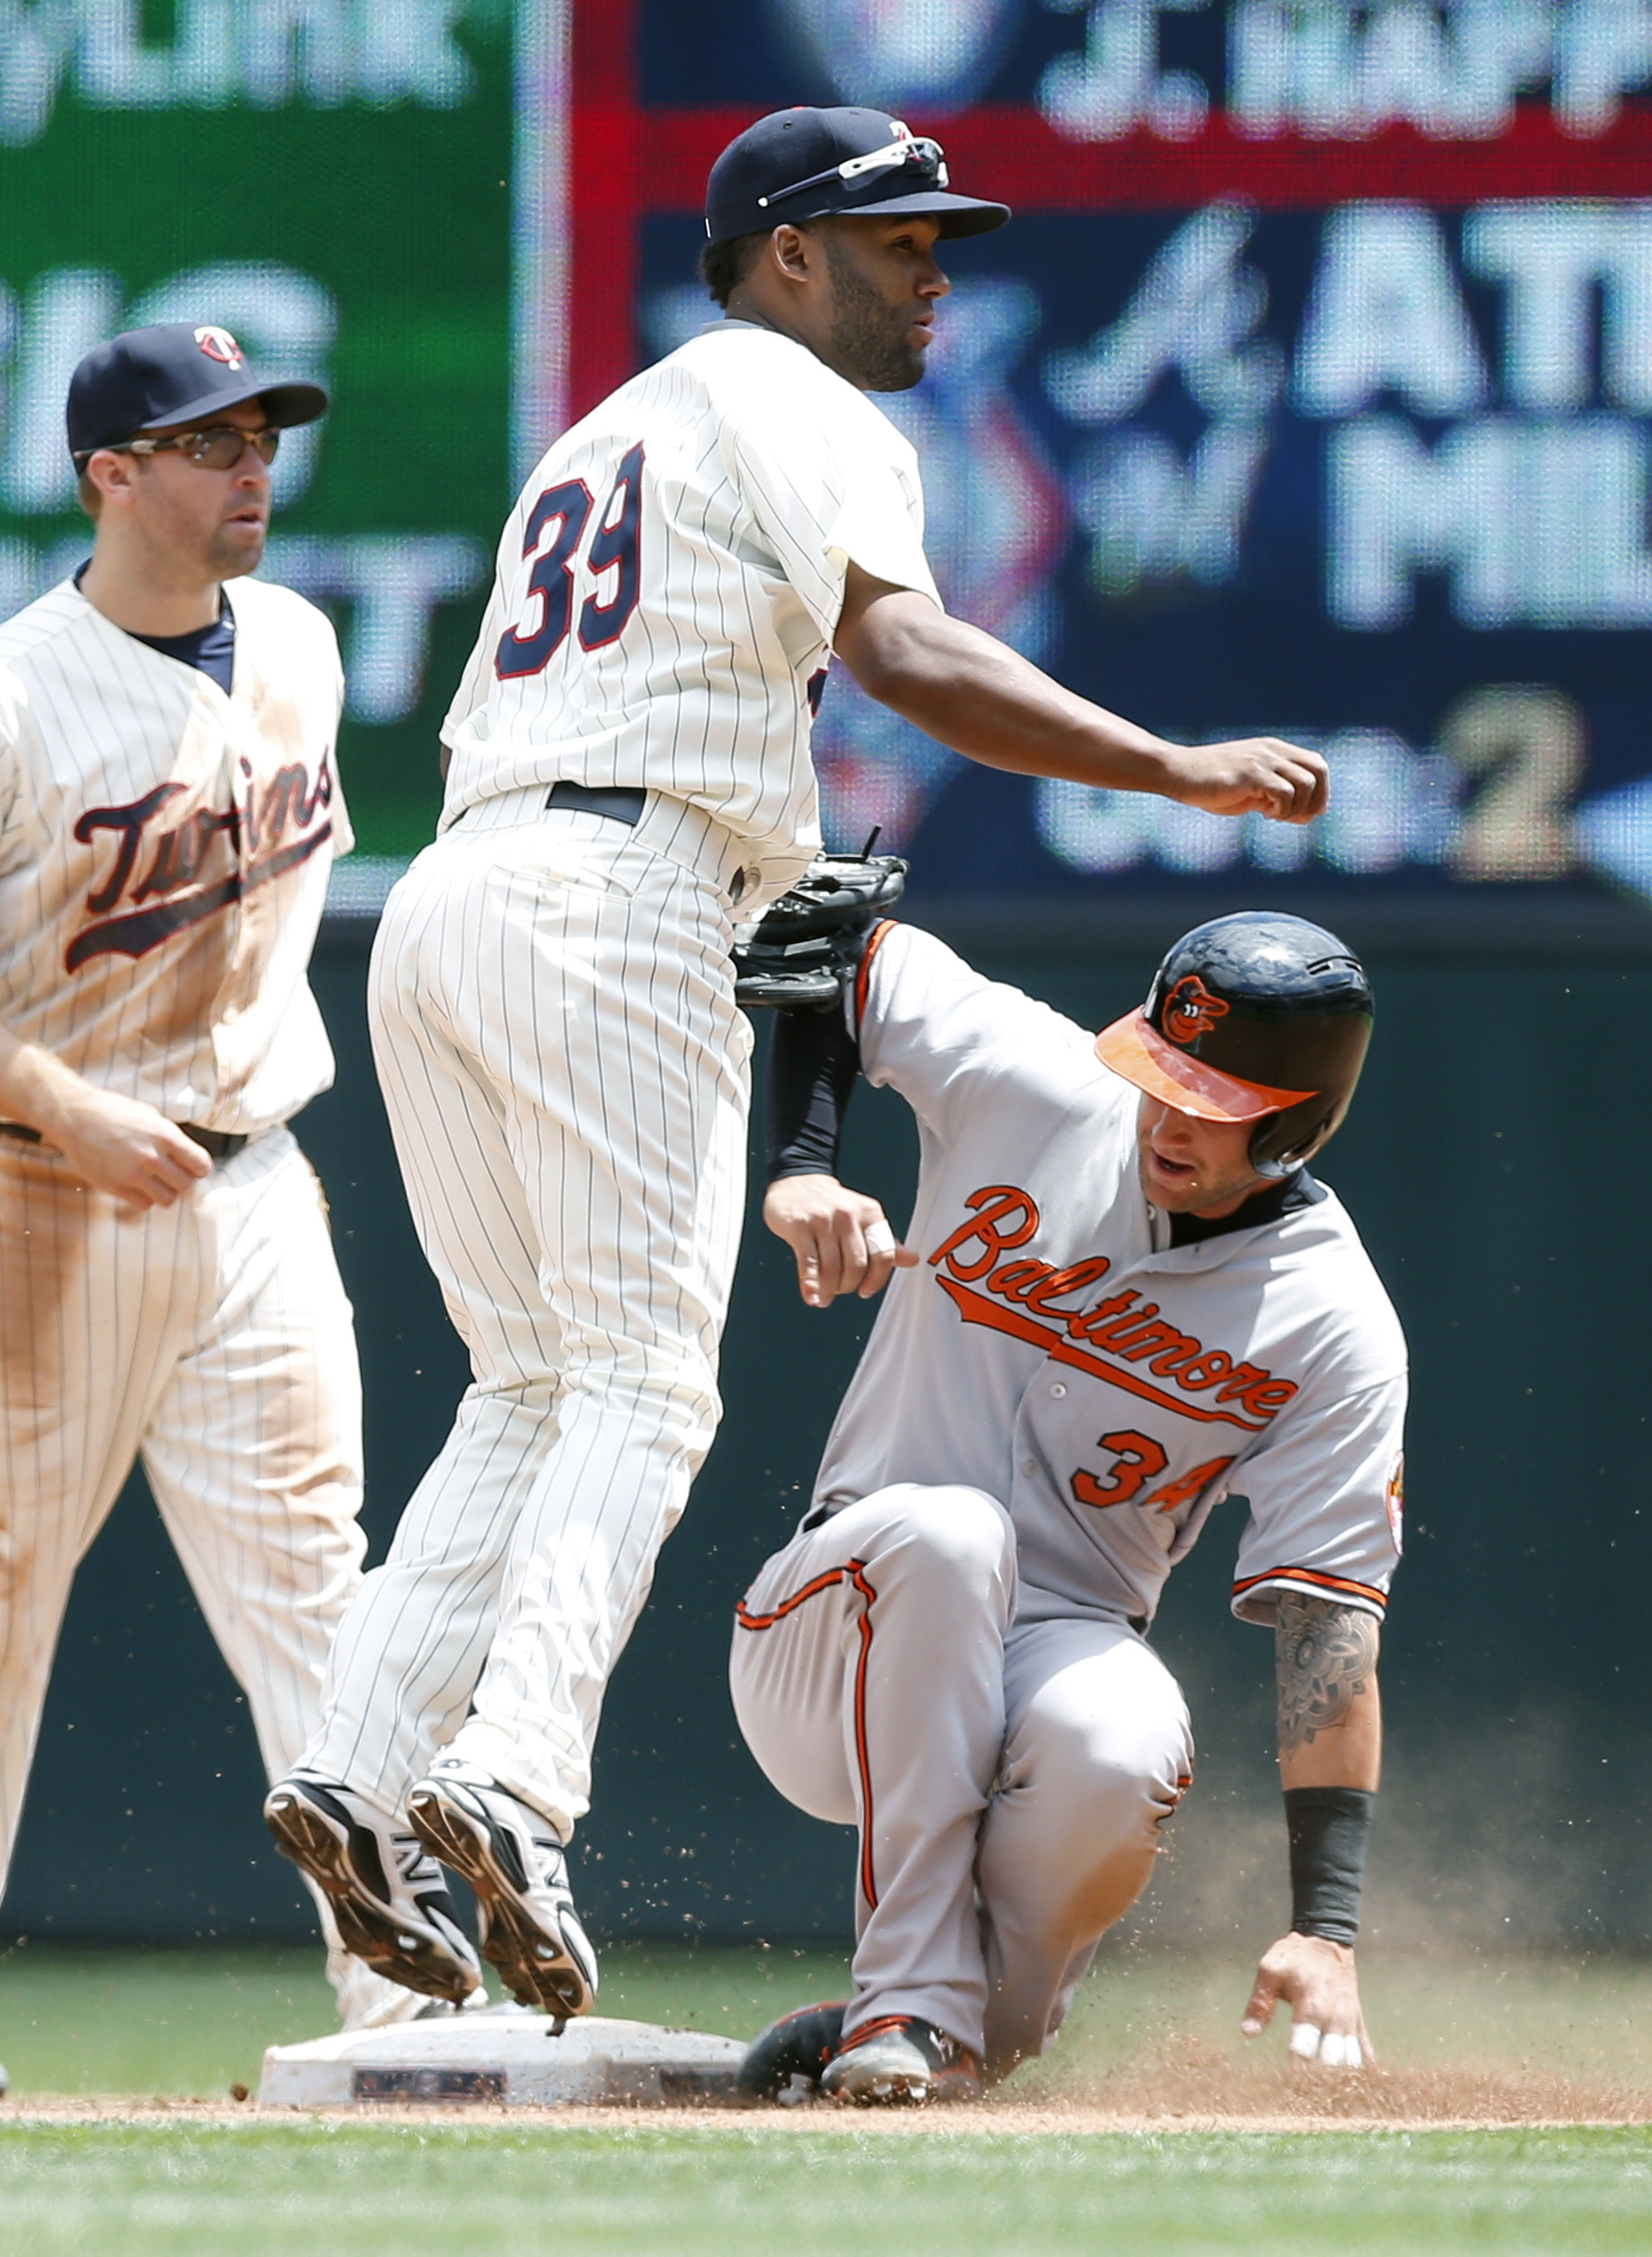 Baltimore Orioles' Christian Walker, right, is forced out at second as shortstop Danny Santana watches his throw to double up J.J. Hardy in the fourth inning of a baseball game, Wednesday, July 8, 2015, in Minneapolis. (AP Photo/Jim Mone)